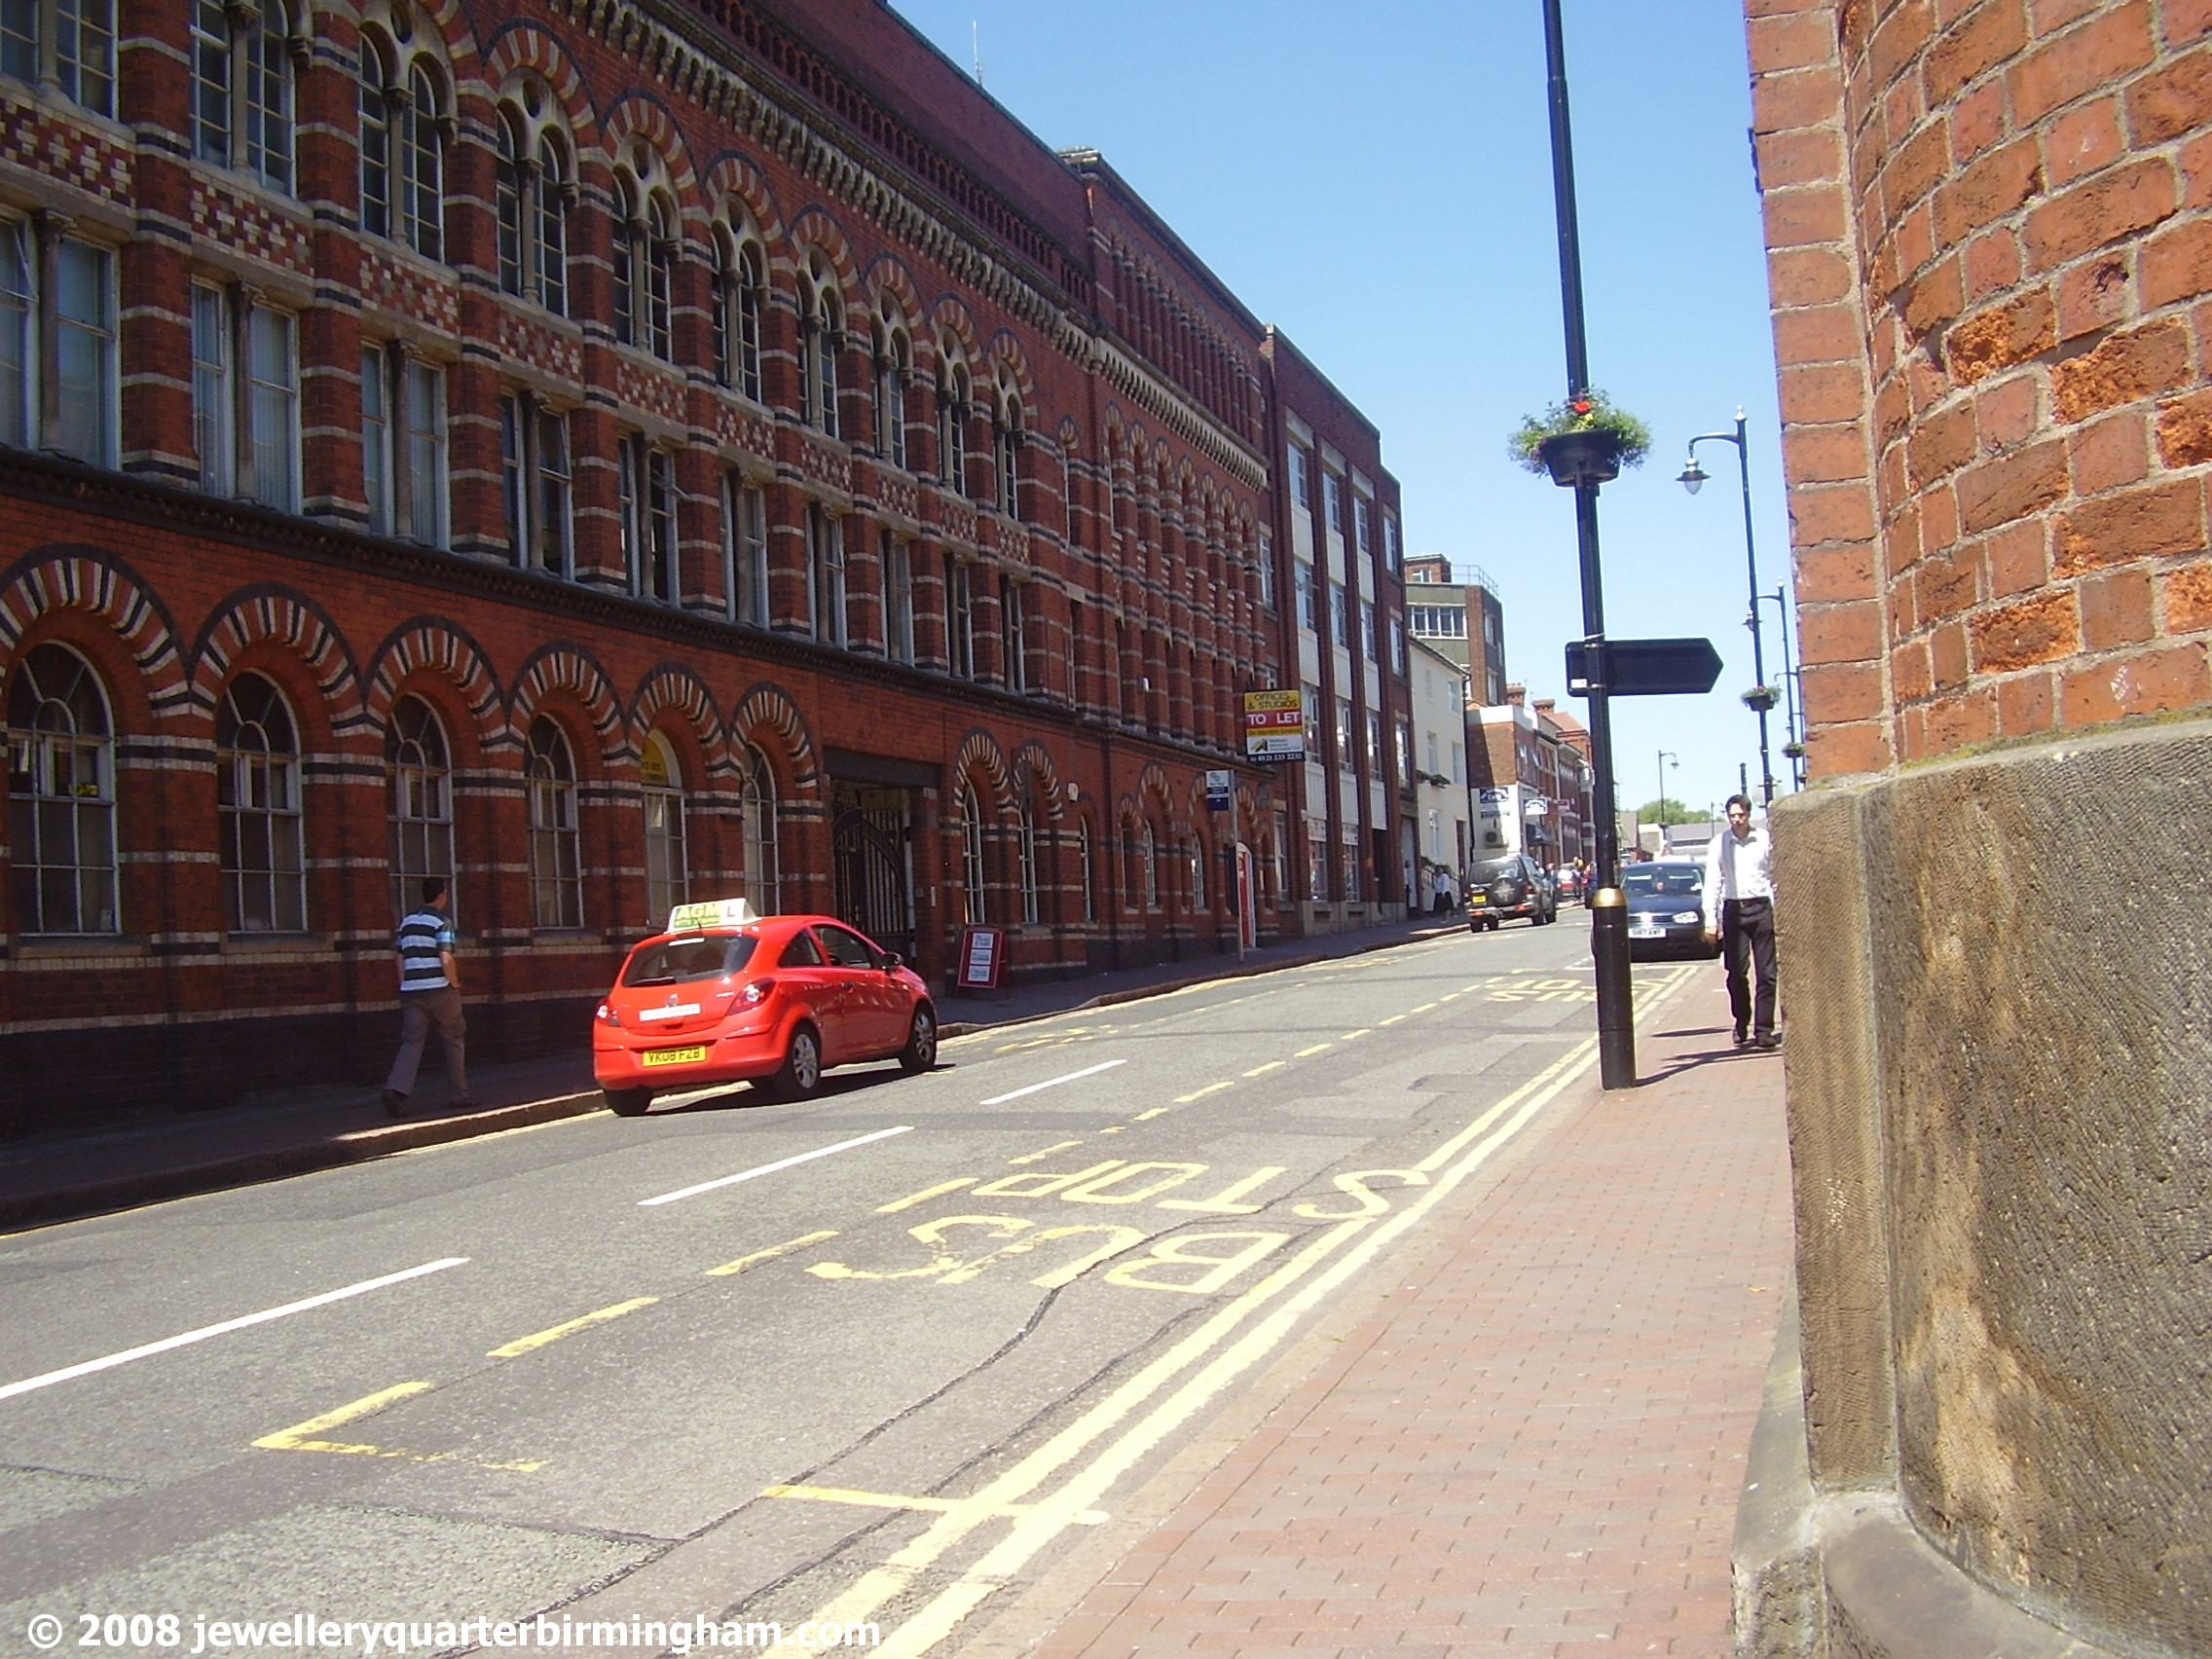 Walking-past-Graham-St-up-Frederick-St-towards-Clock.jpg 2008